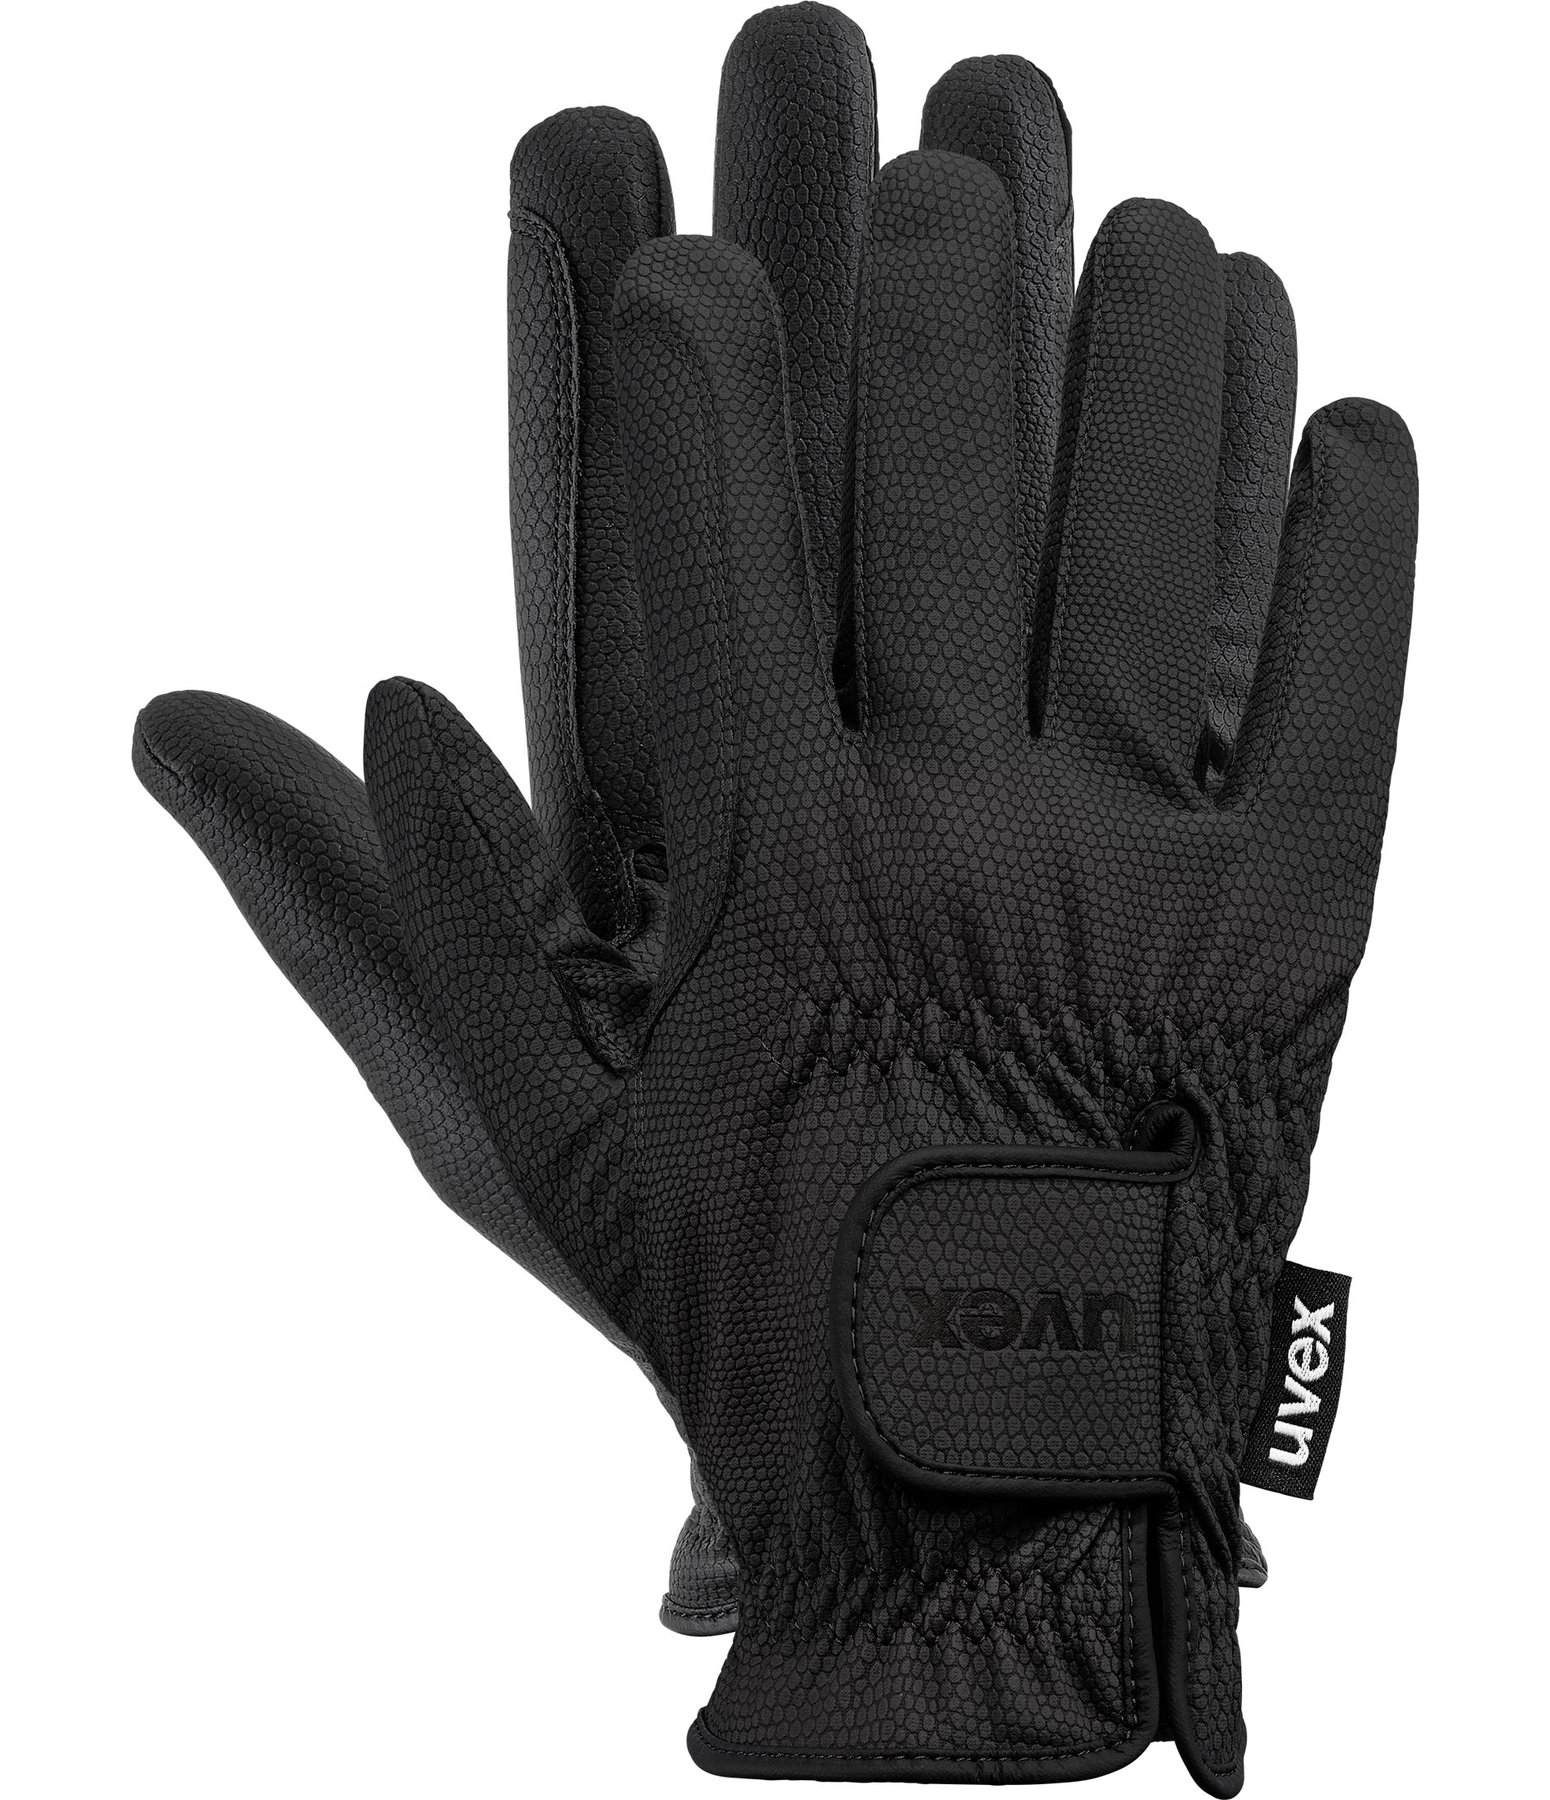 Winter Riding Gloves sportstyle